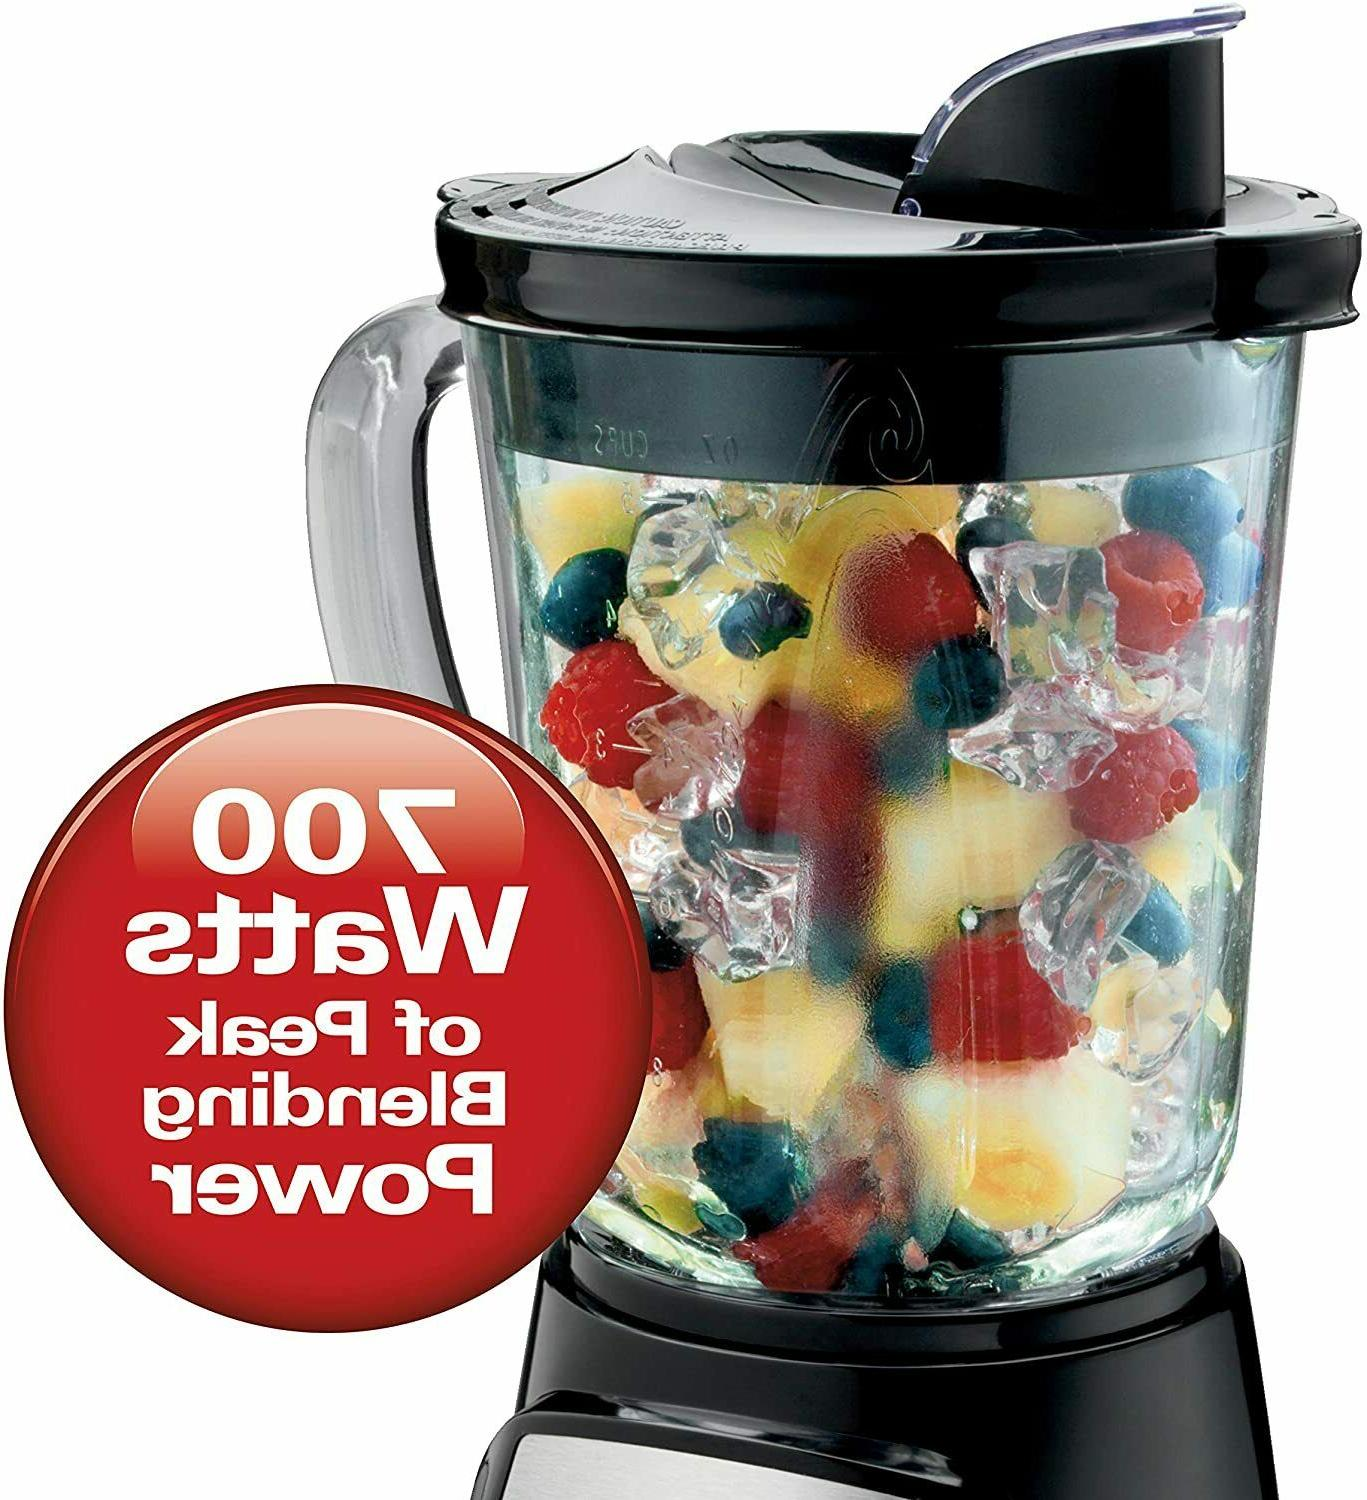 Hamilton Beach Power Elite Blender with 12 Functions for Pur